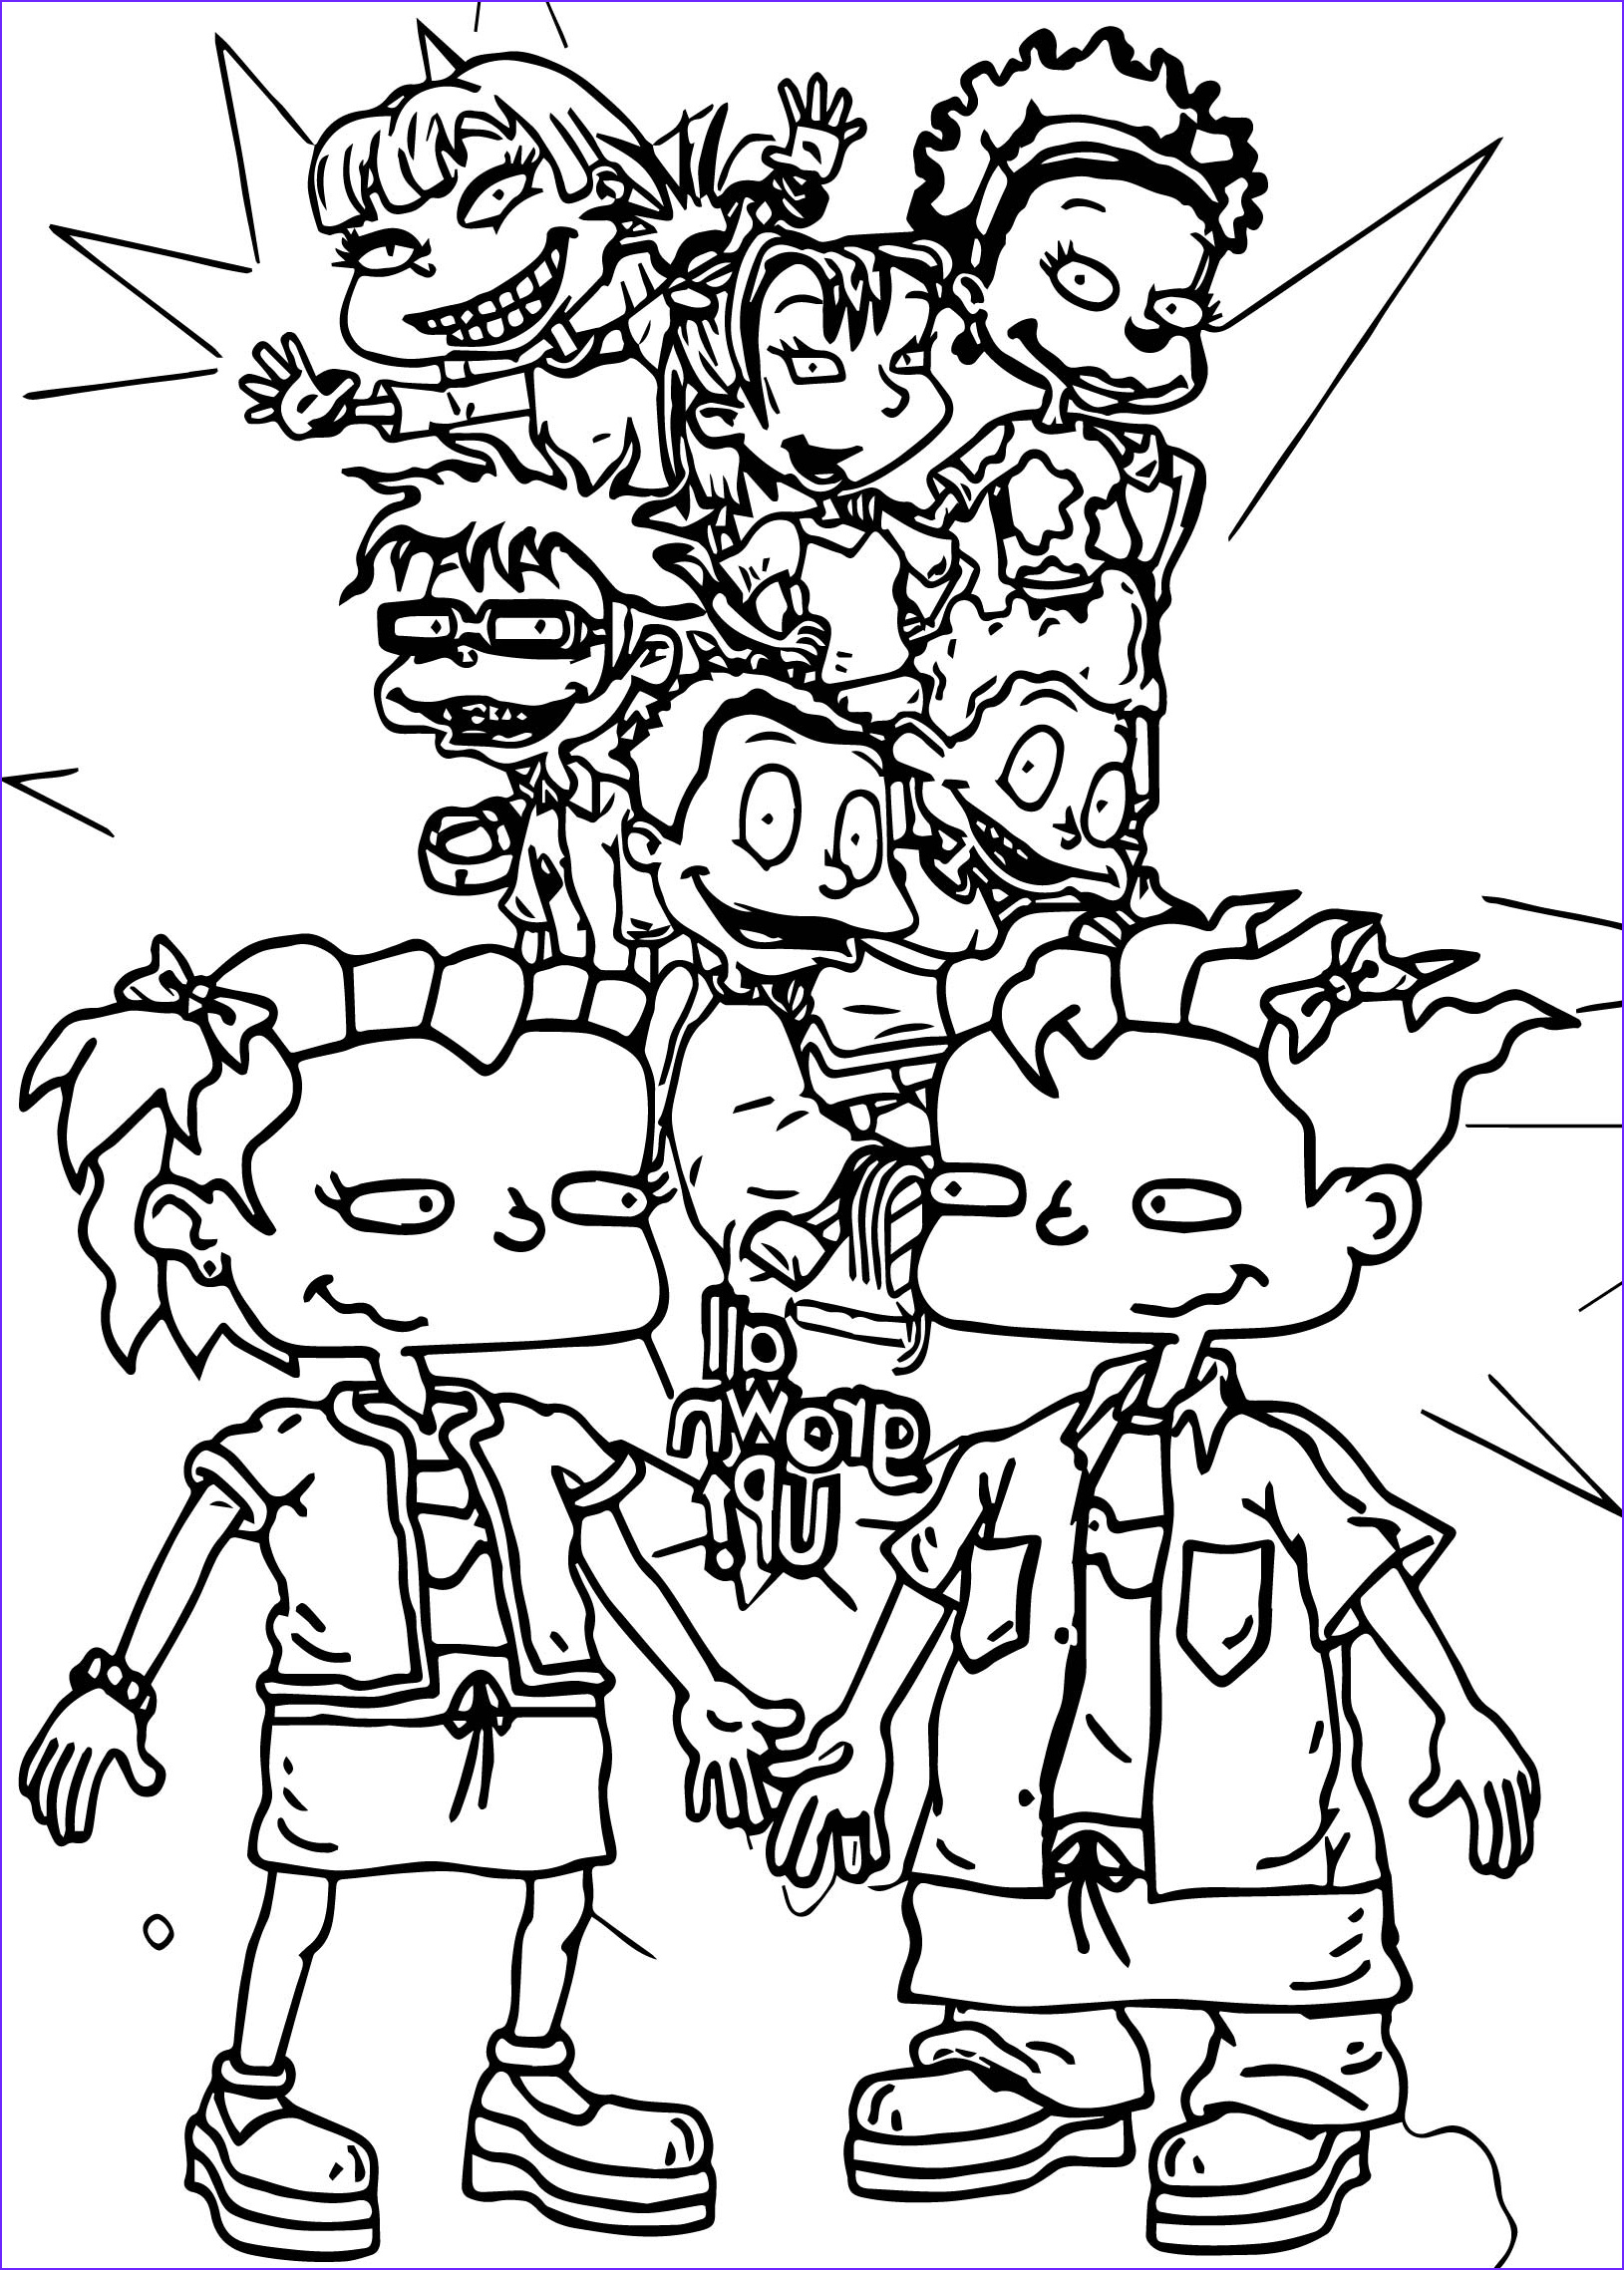 grown rugrats coloring page